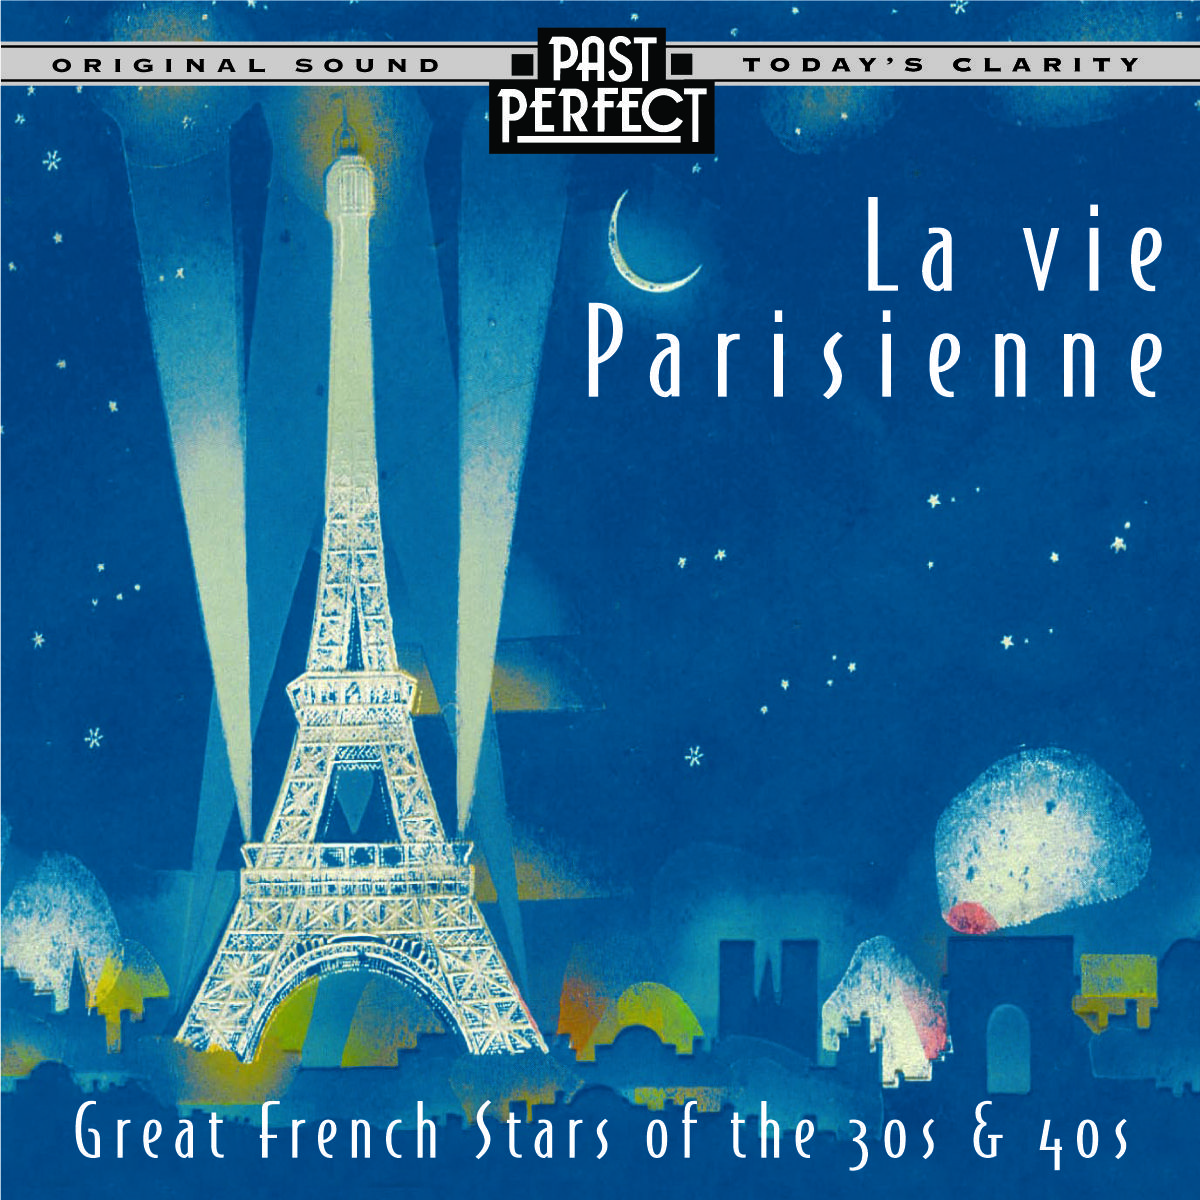 La Vie Parisienne: French Chansons From The 1930s & 40s